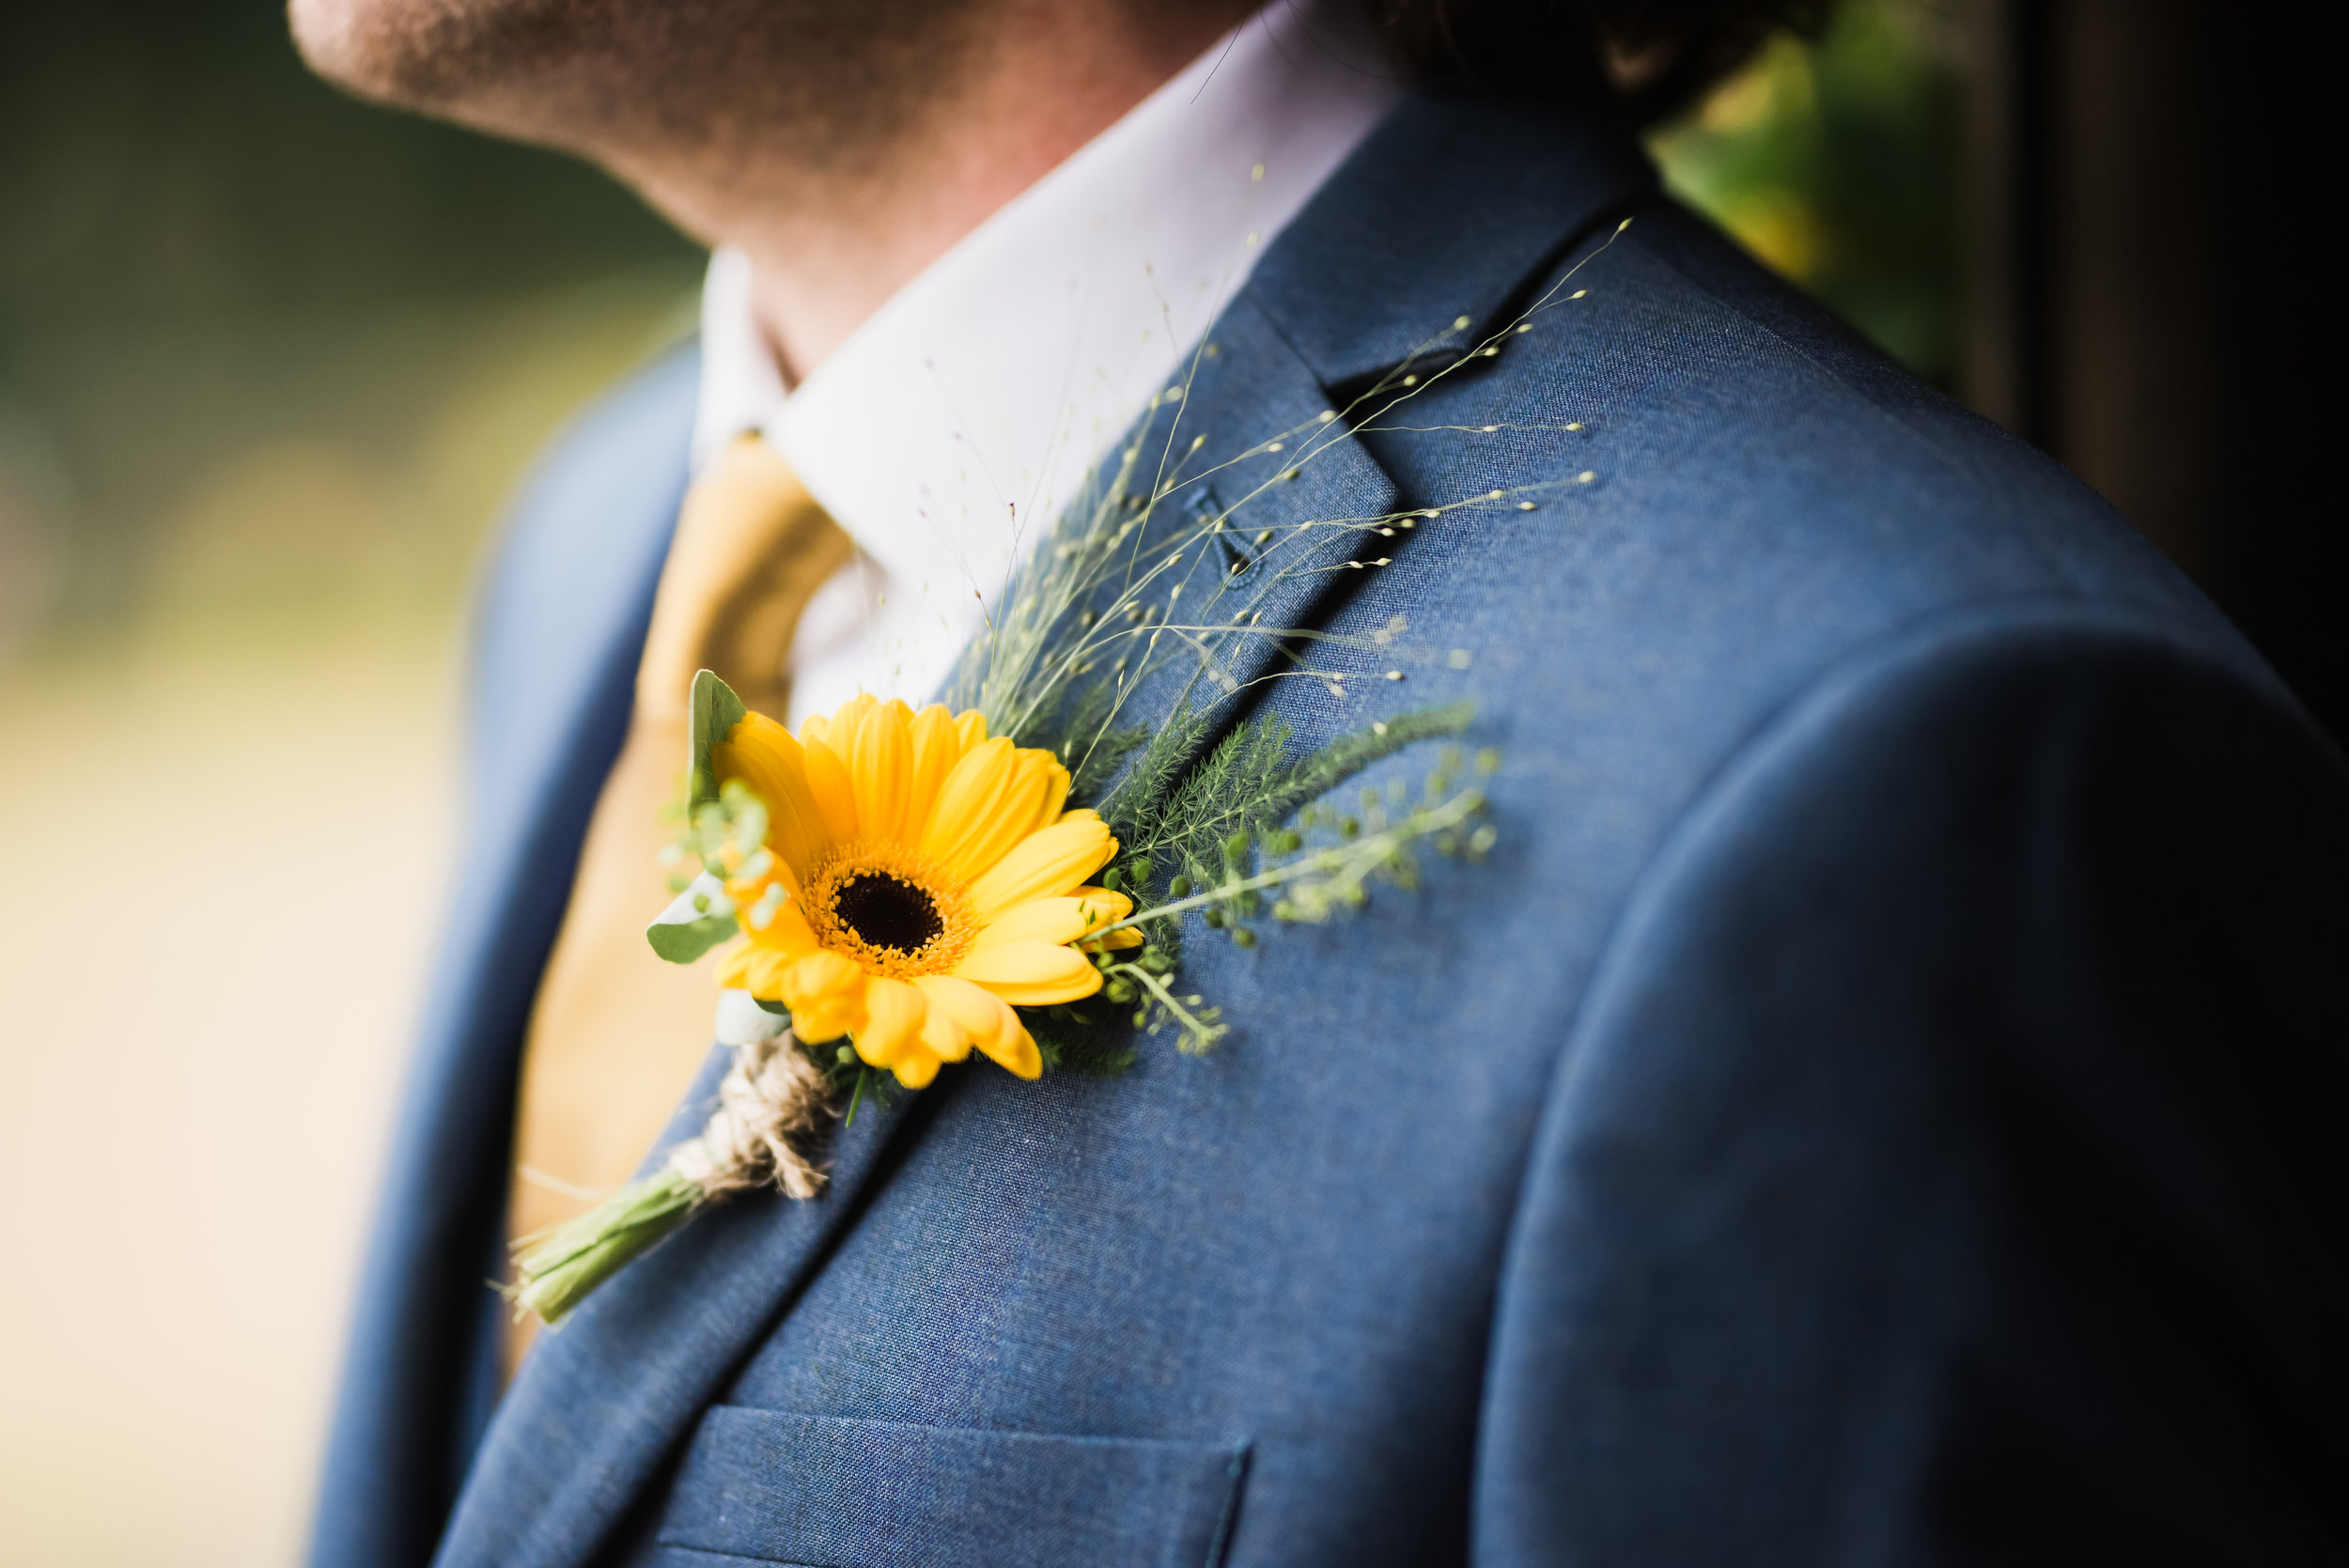 A suit lapel with a yellow flower pinned to it.